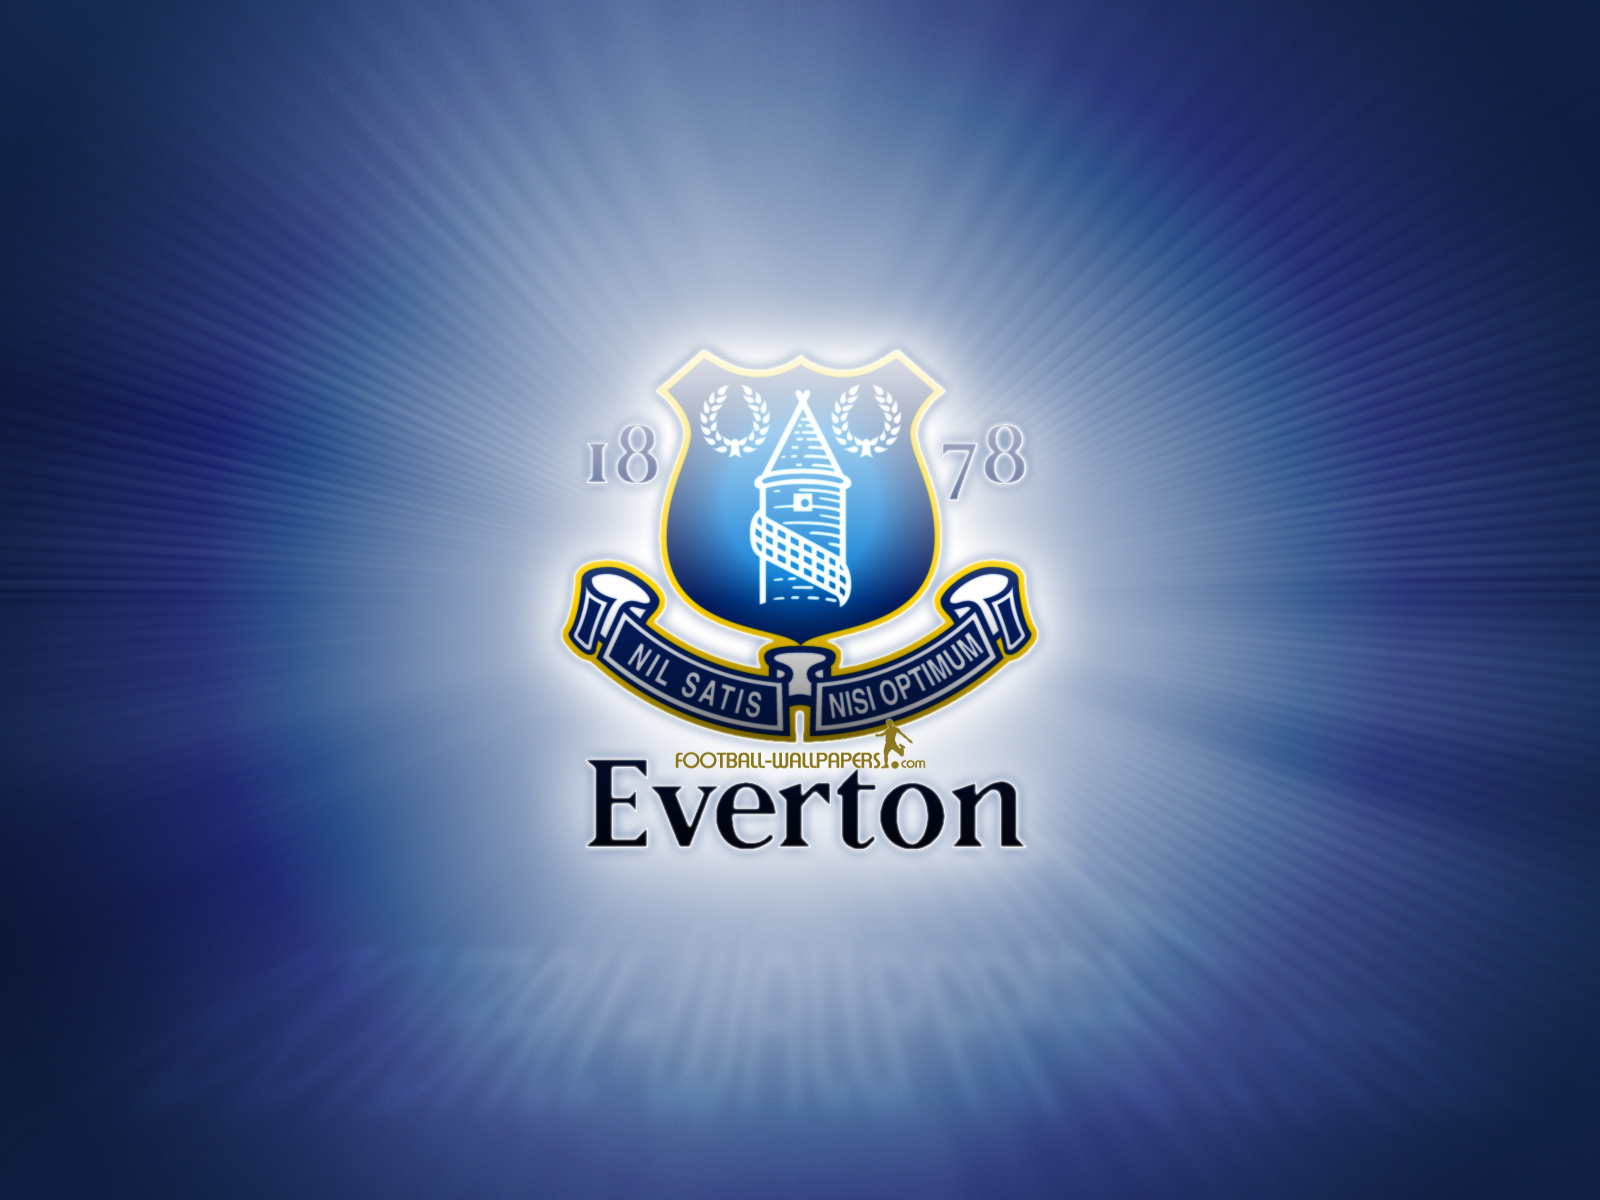 Everton images Everton :) HD wallpaper and background photos (2508020)